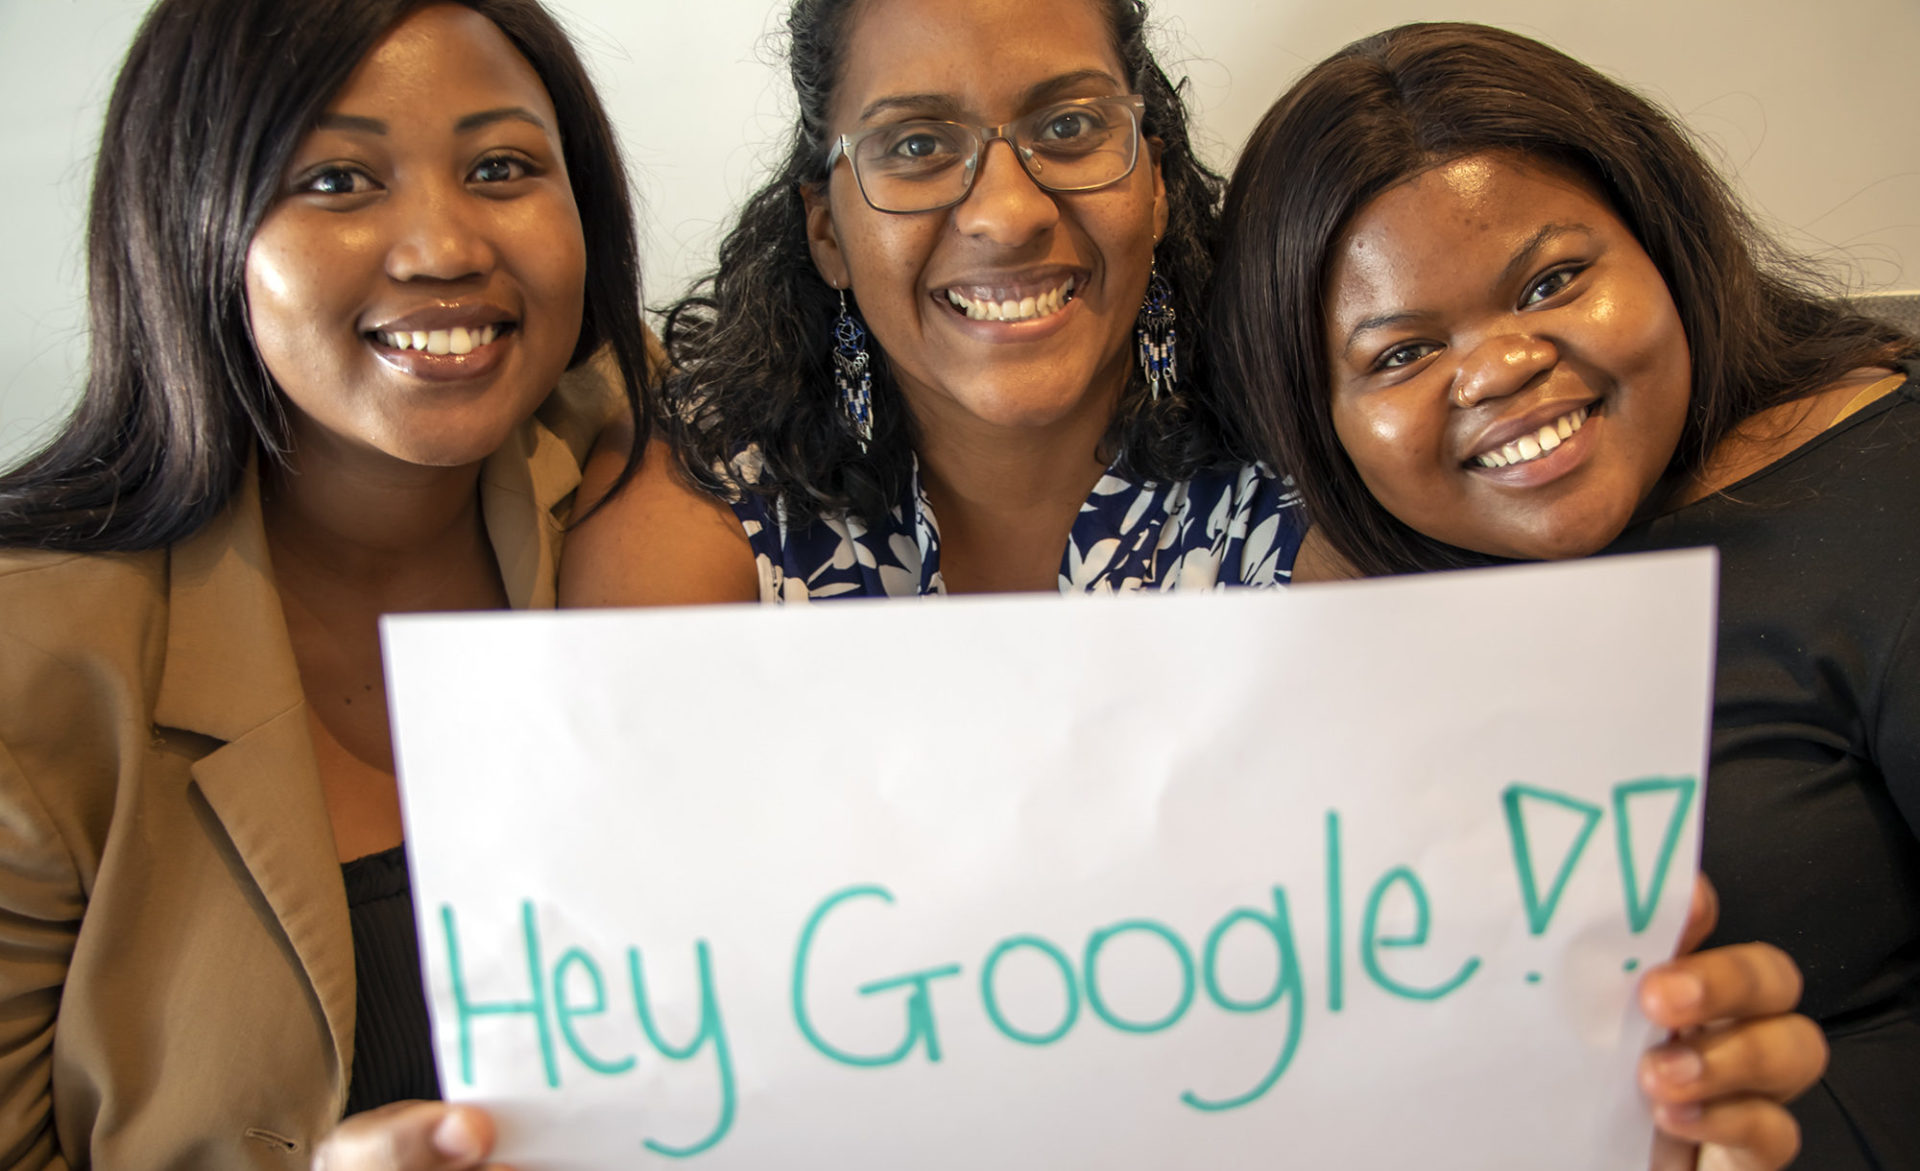 Food For Mzansi has been selected as one of only two South African news organisations to receive support from the Google News Initiative. Pictured from left to right: Food For Mzansi audience engagement journalist, Sinesipho Tom, editor, Dawn Noemdoe, and journalist, Noluthando Ngcakani .